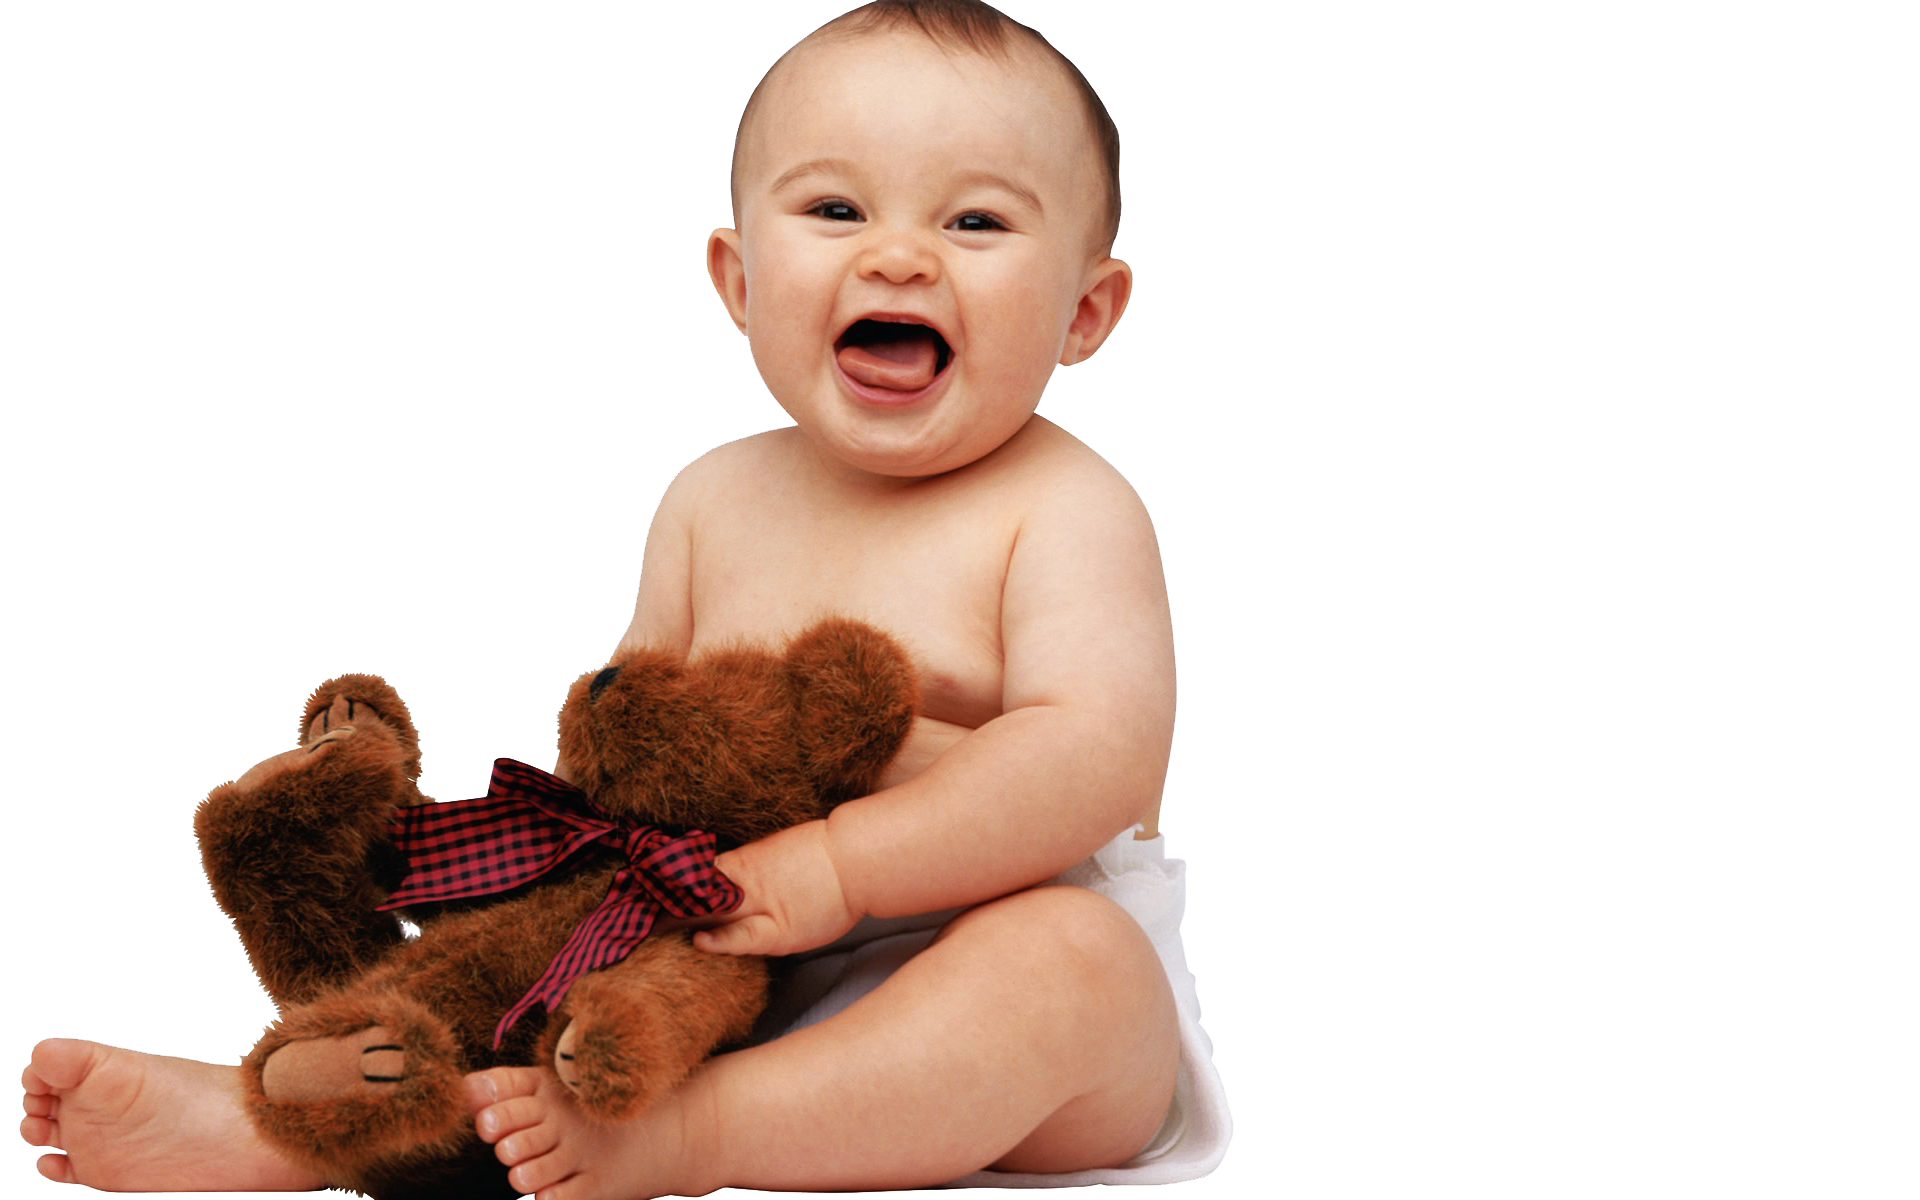 Baby PNG Transparent Image - Laughing PNG HD